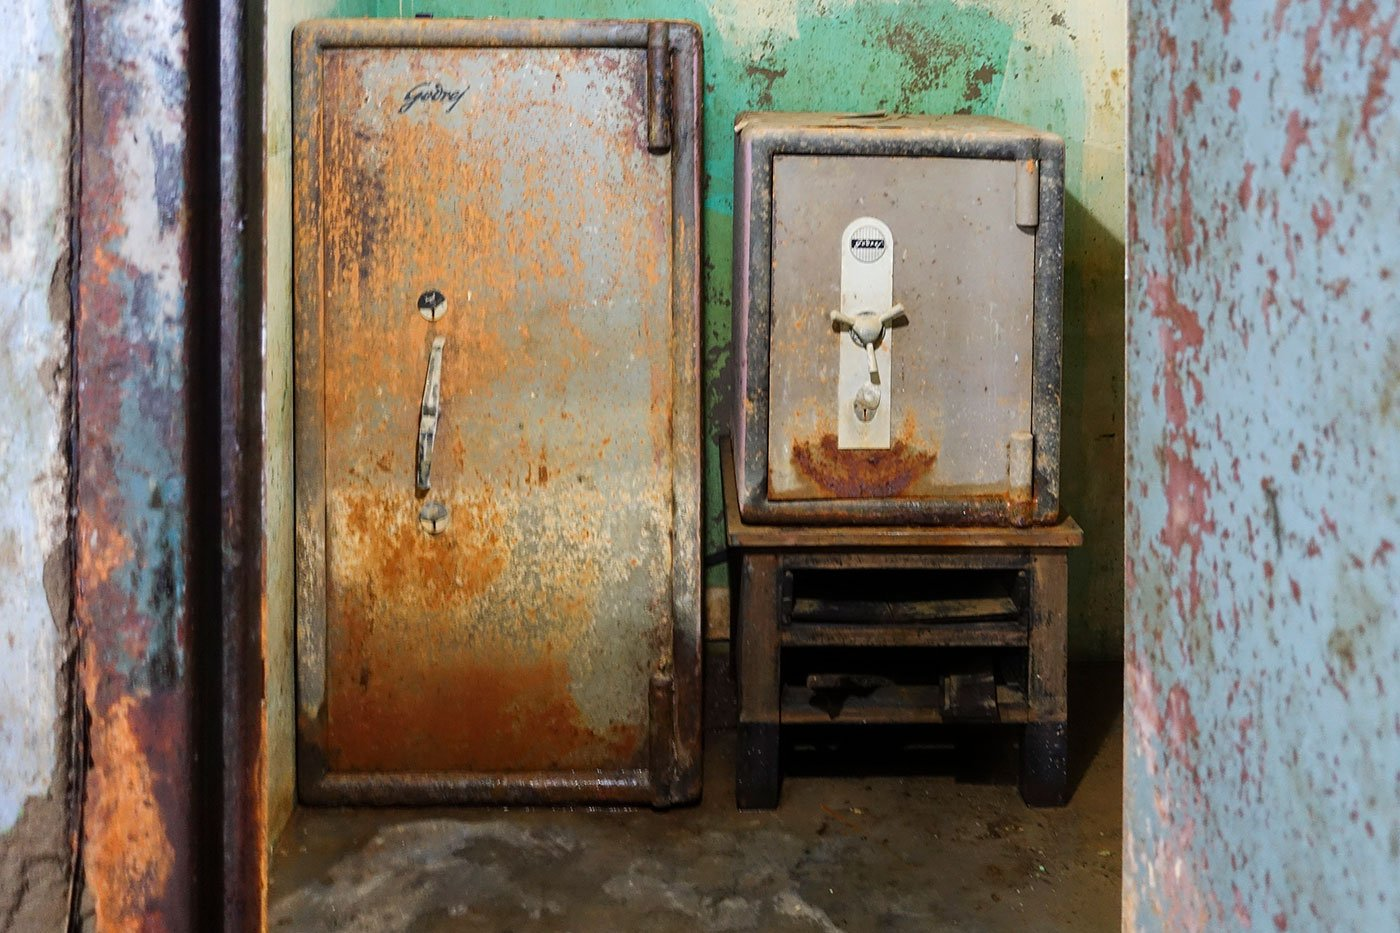 Two cast-iron safes bear the rust, corrosion and marks wrought by the waters that engulfed them.